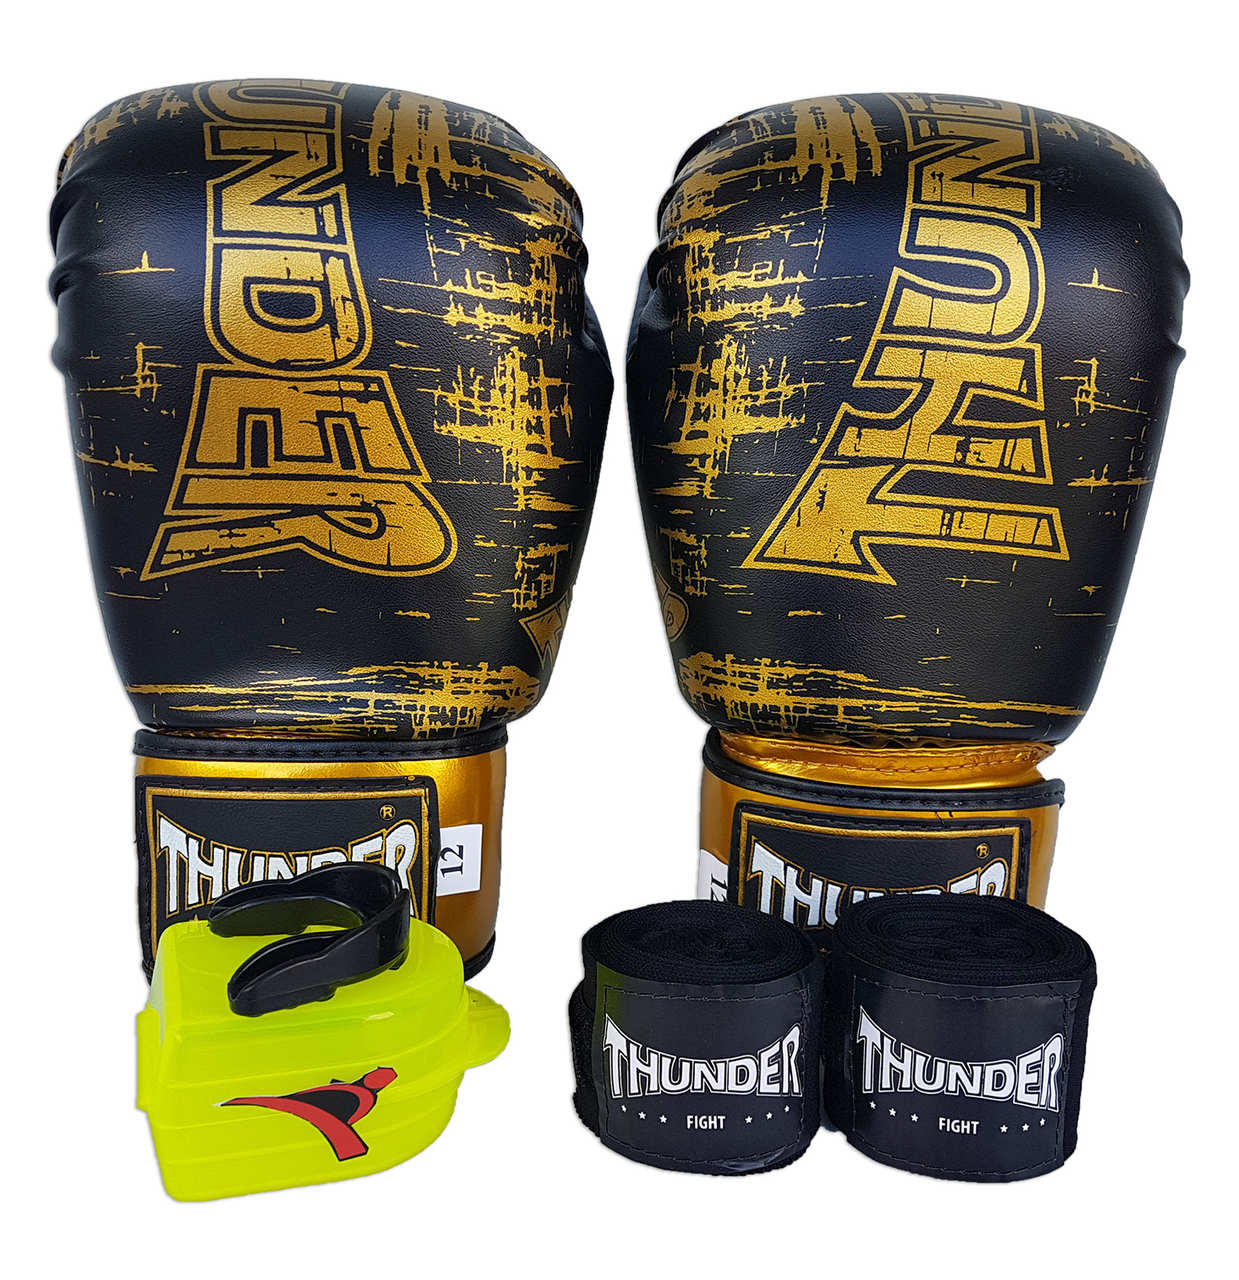 Kit de Boxe / Muay Thai 10oz - Preto Riscado - Thunder Fight   - PRALUTA SHOP